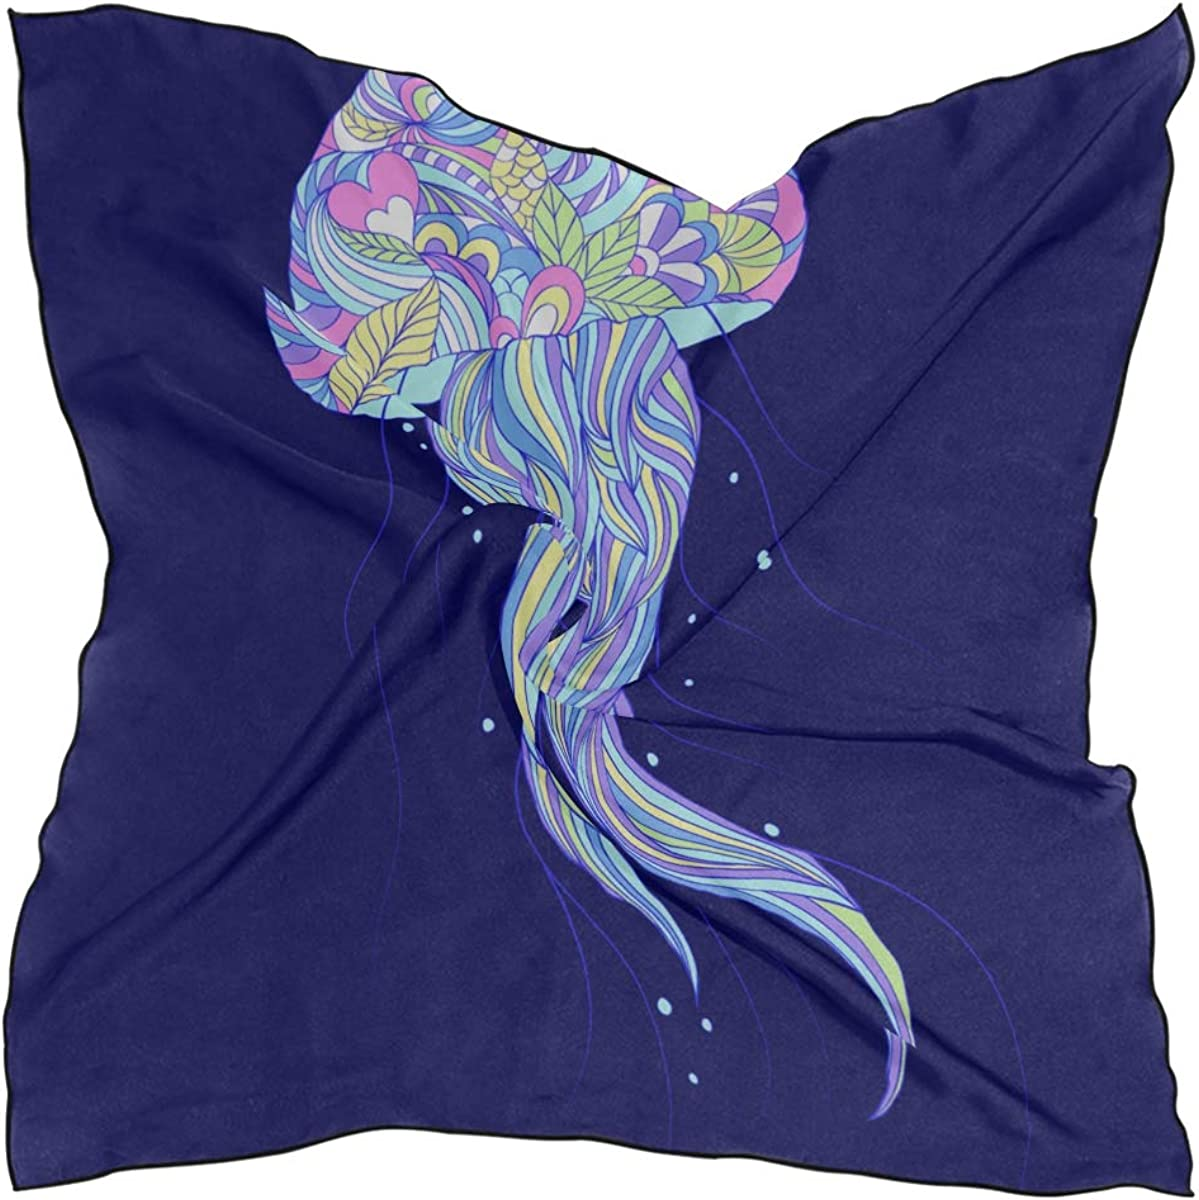 Soft Polyester Silk Ladies Scarf Fashion Print Colored Jellyfish Creature Square Fashion Scarf Girls Scarves Headband Scarf Multiple Ways Of Wearing Daily Decor